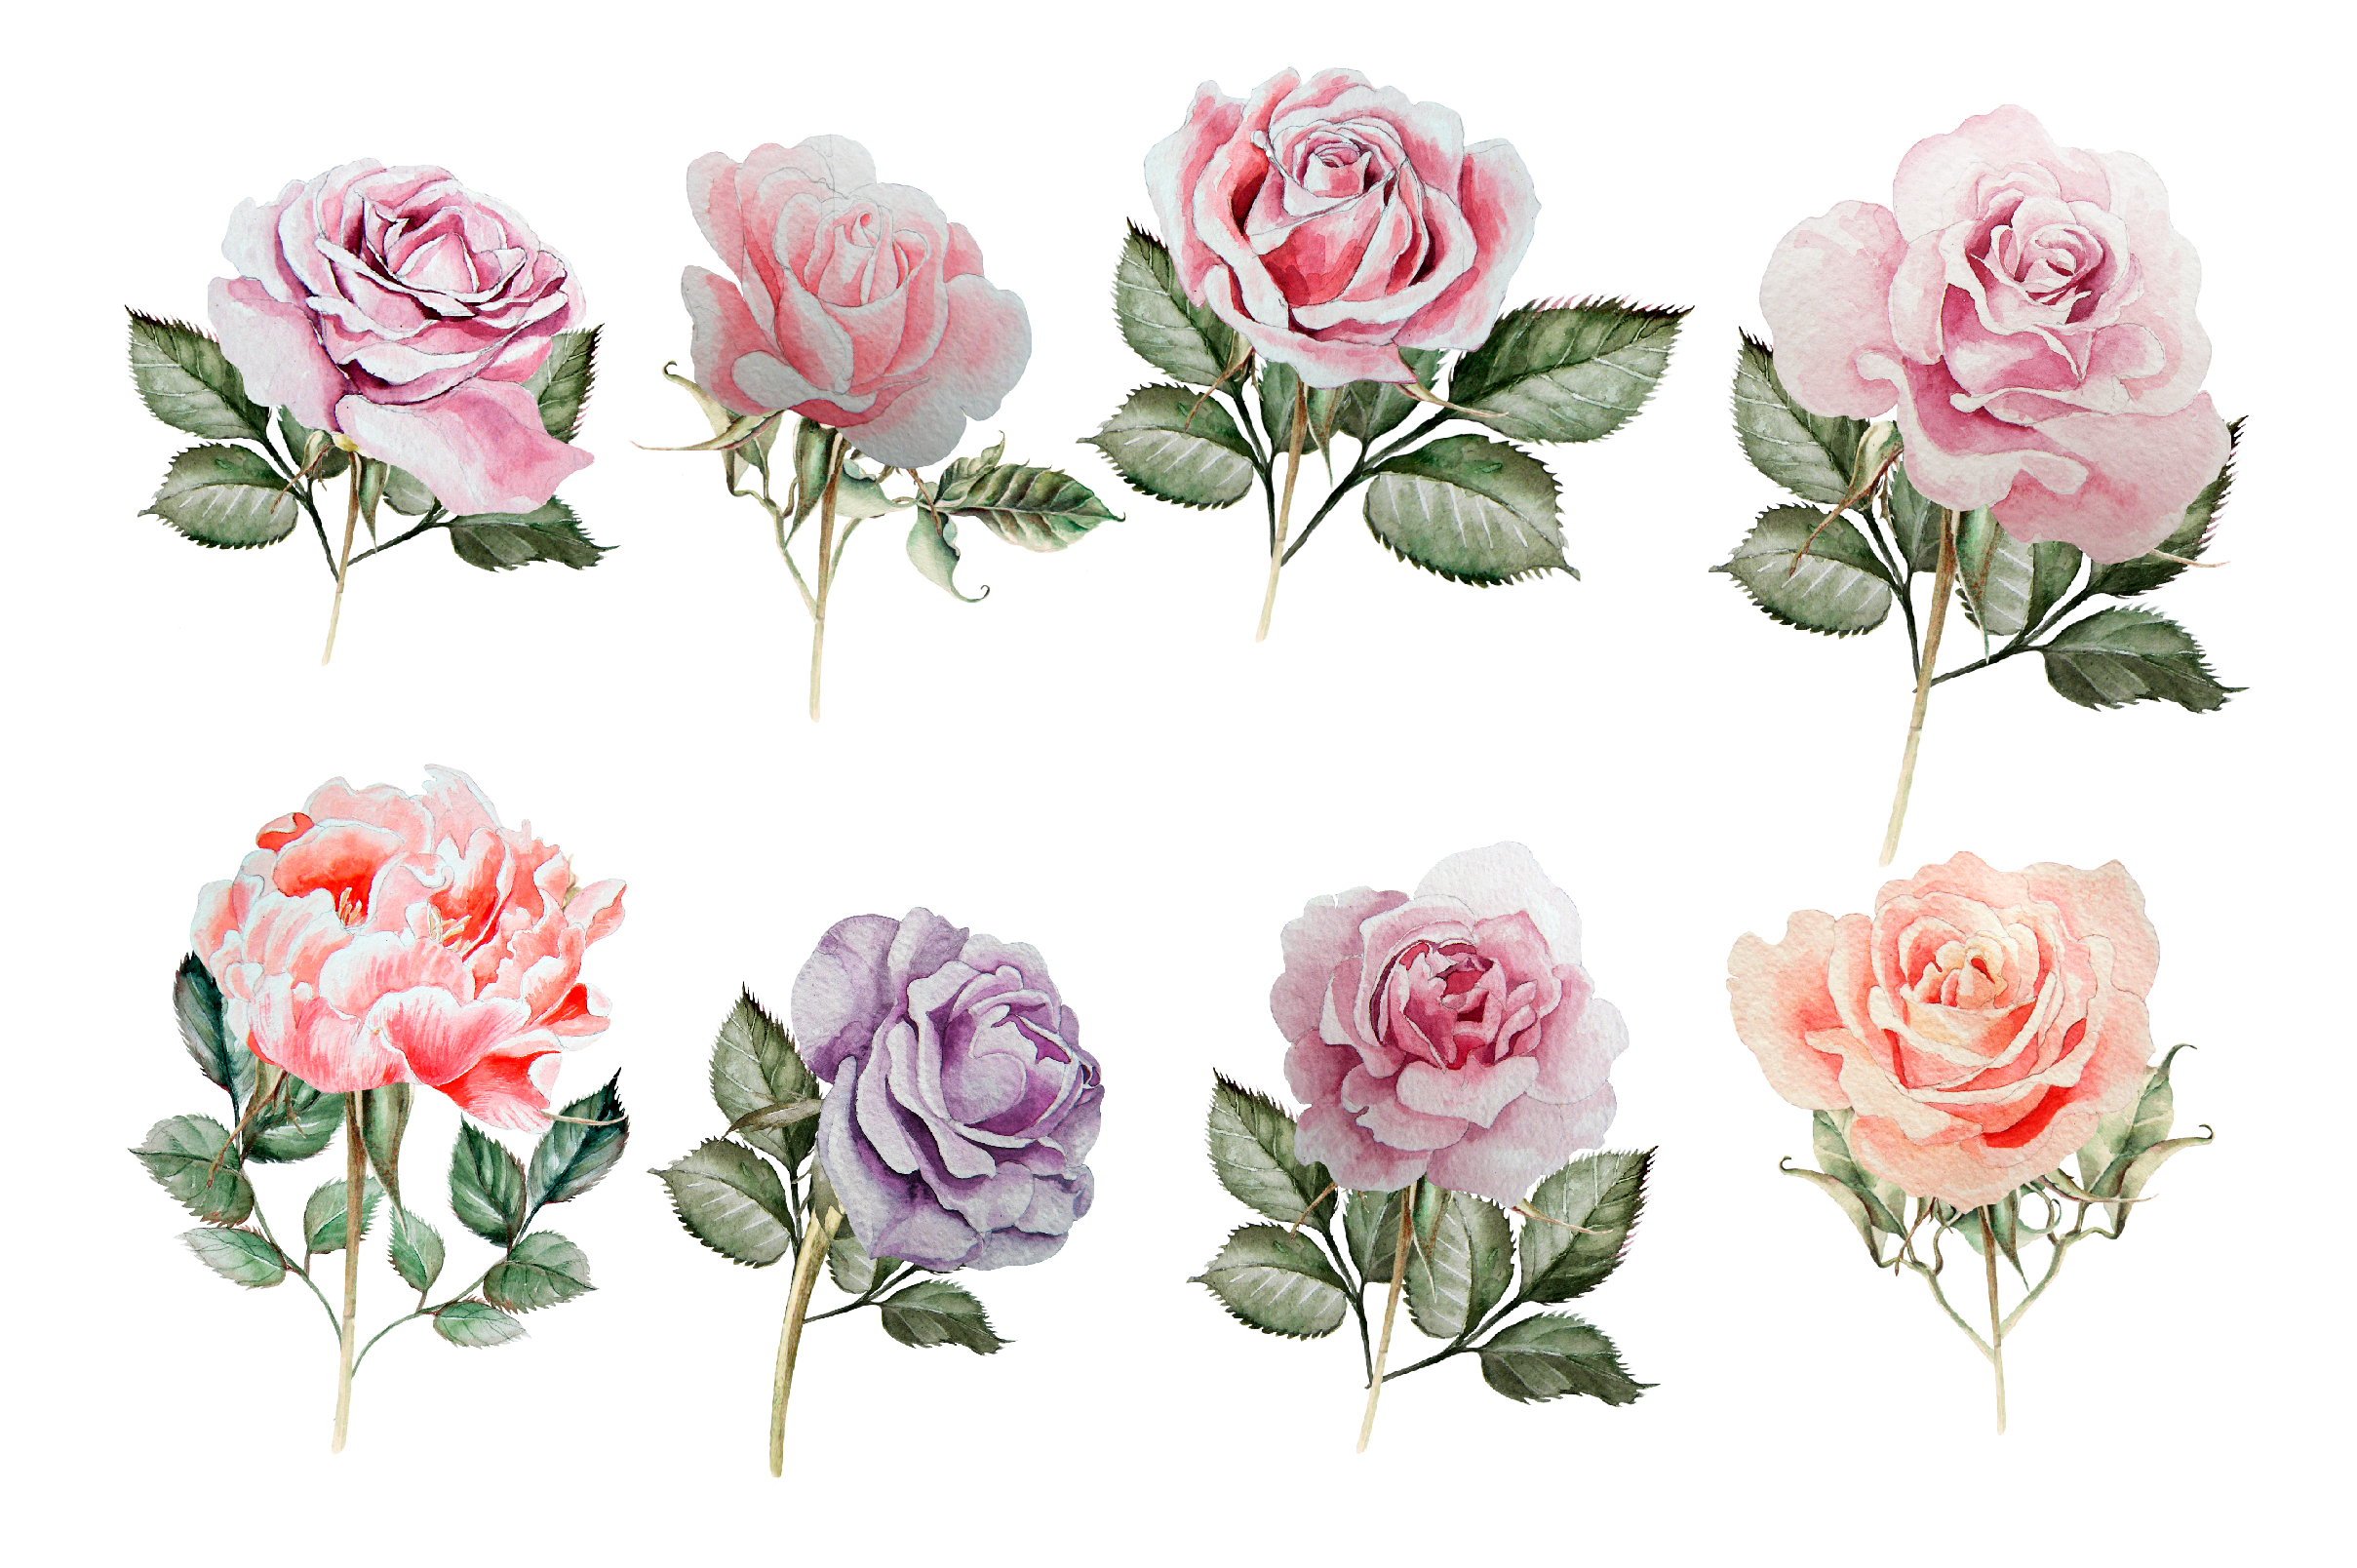 Hand drawn watercolor roses 2 example image 5